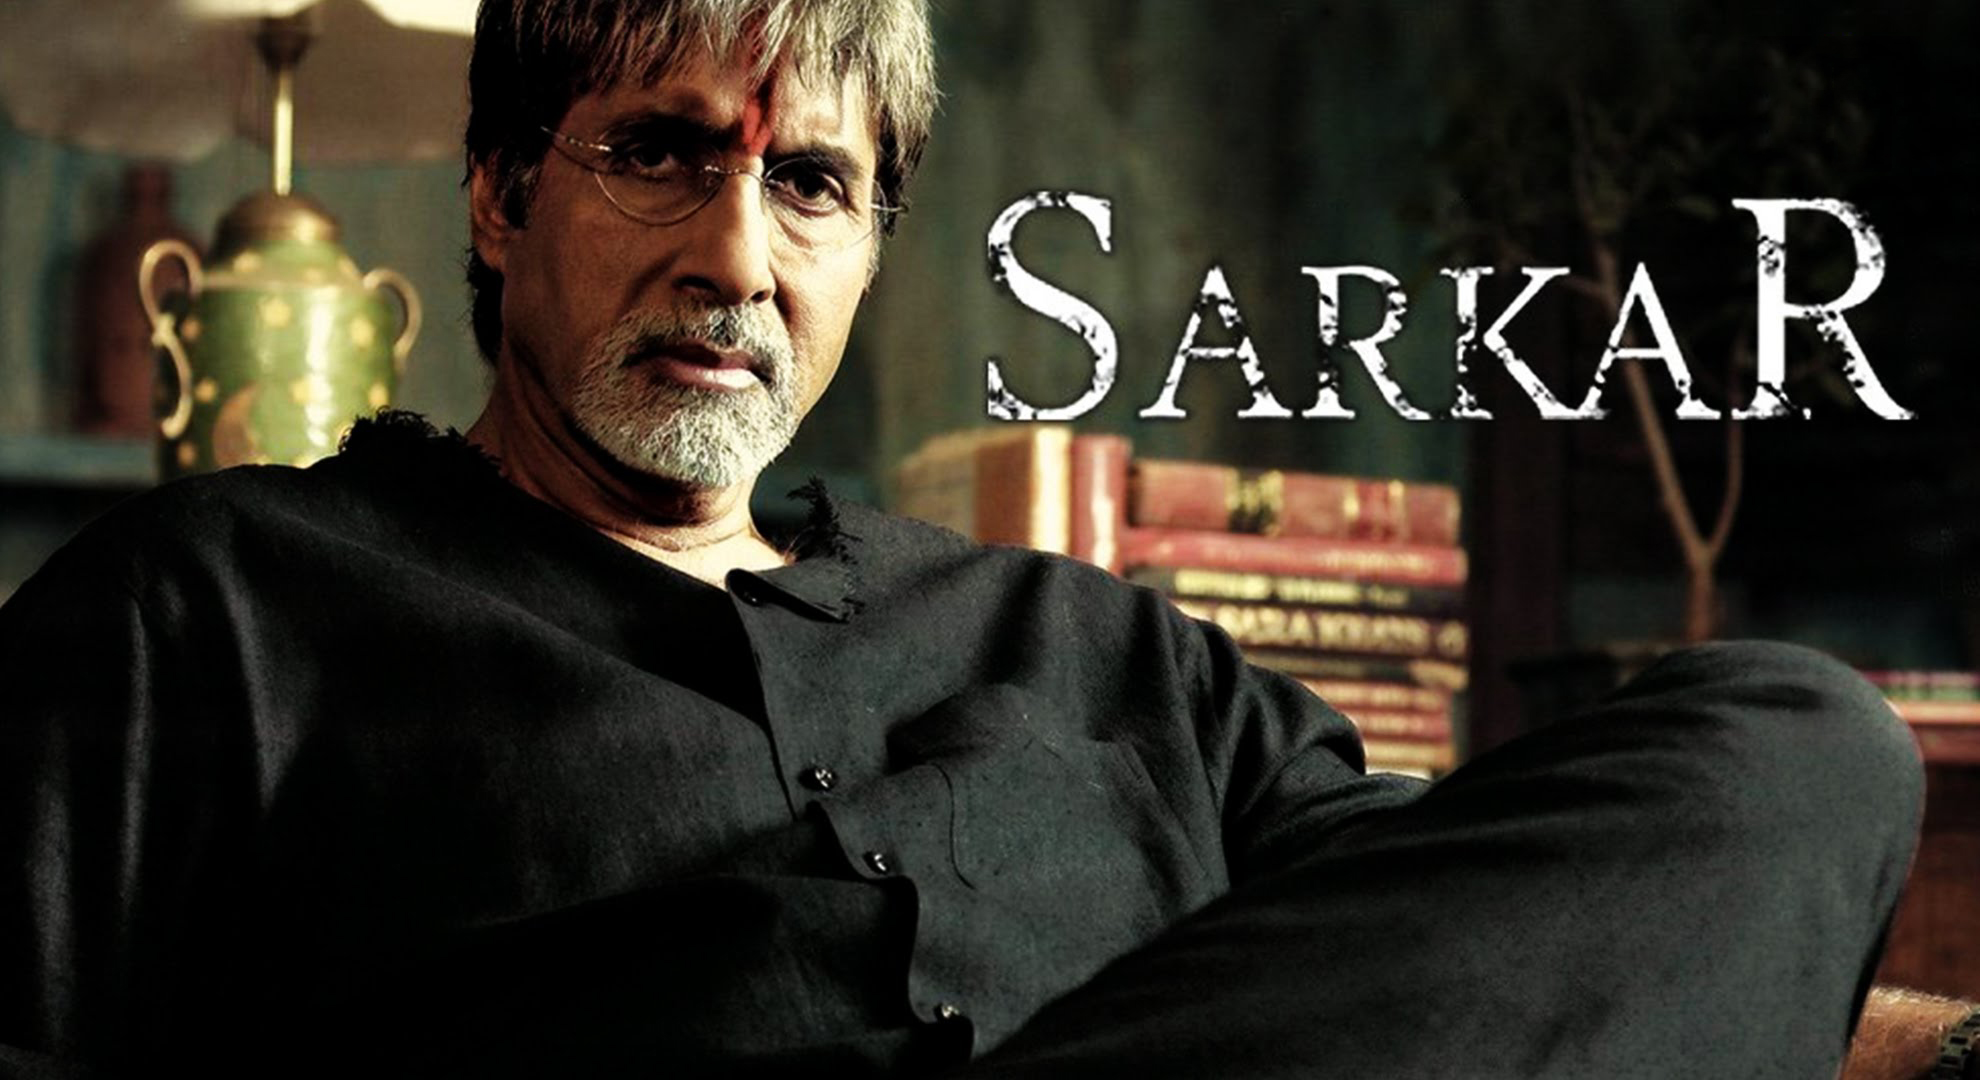 Sarkar Movie HD Poster Amitabh Bachchan